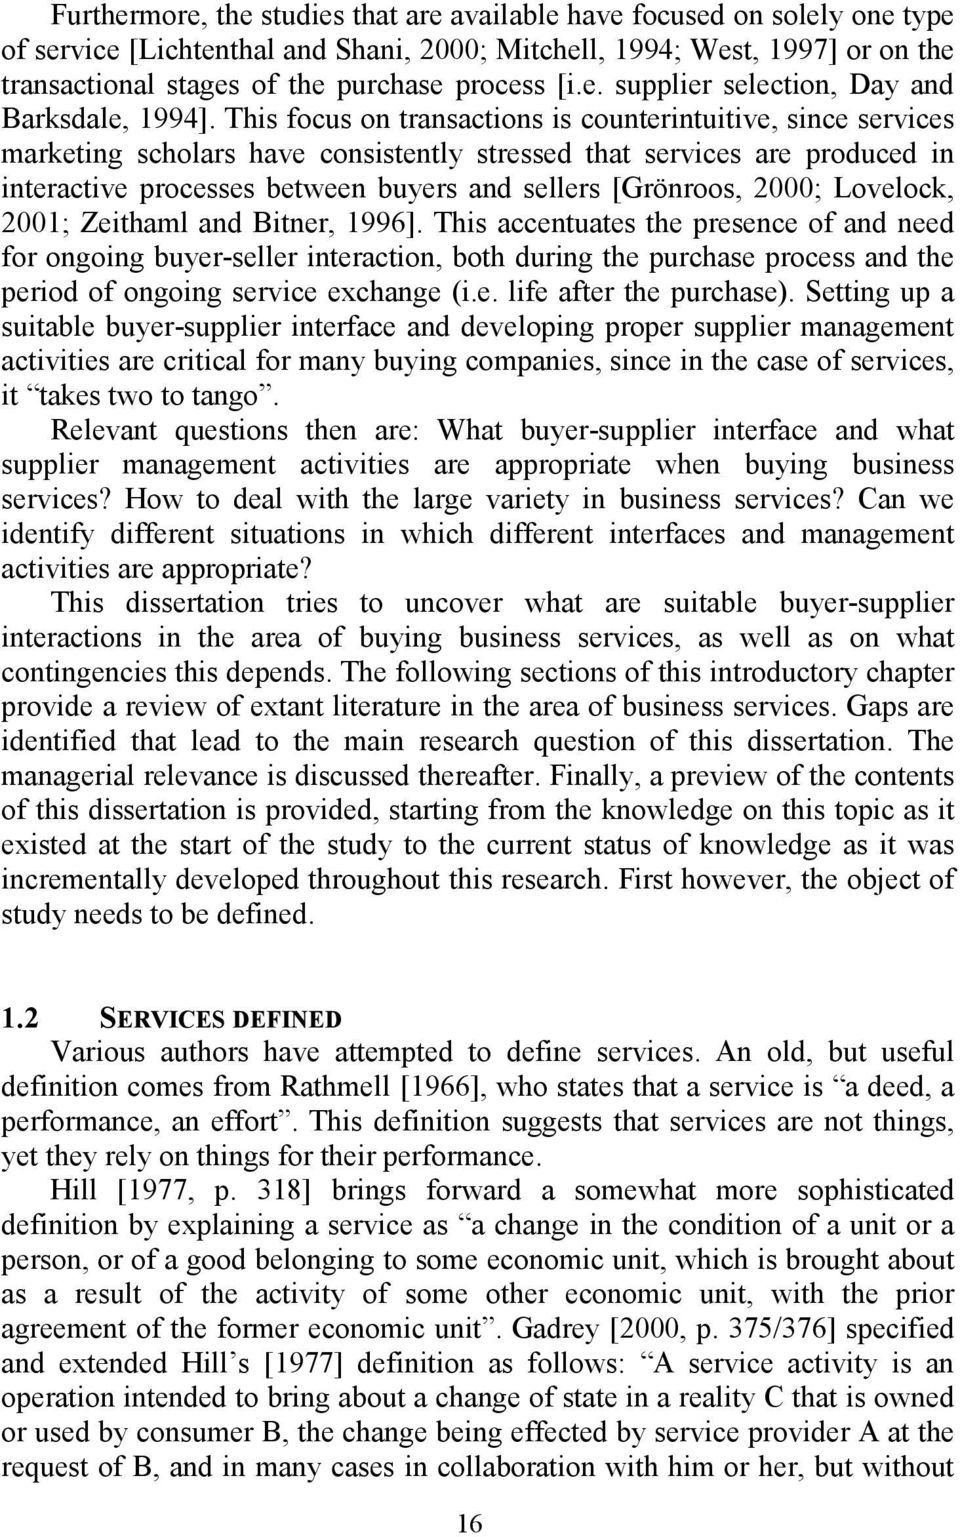 This focus on transactions is counterintuitive, since services marketing scholars have consistently stressed that services are produced in interactive processes between buyers and sellers [Grönroos,